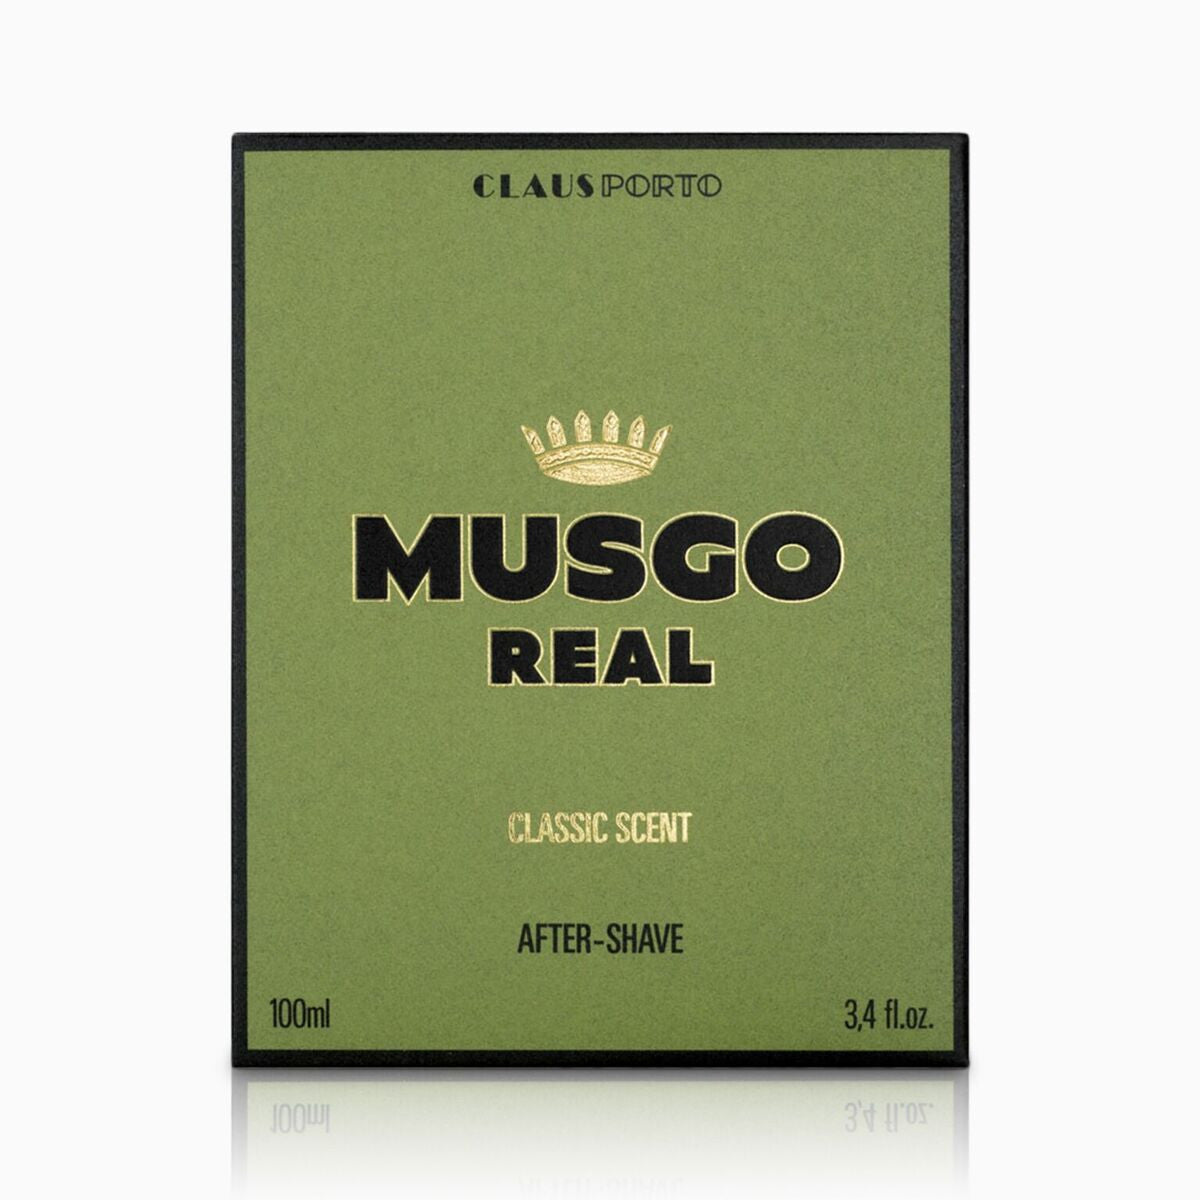 Musgo Real After Shave Classic Scent